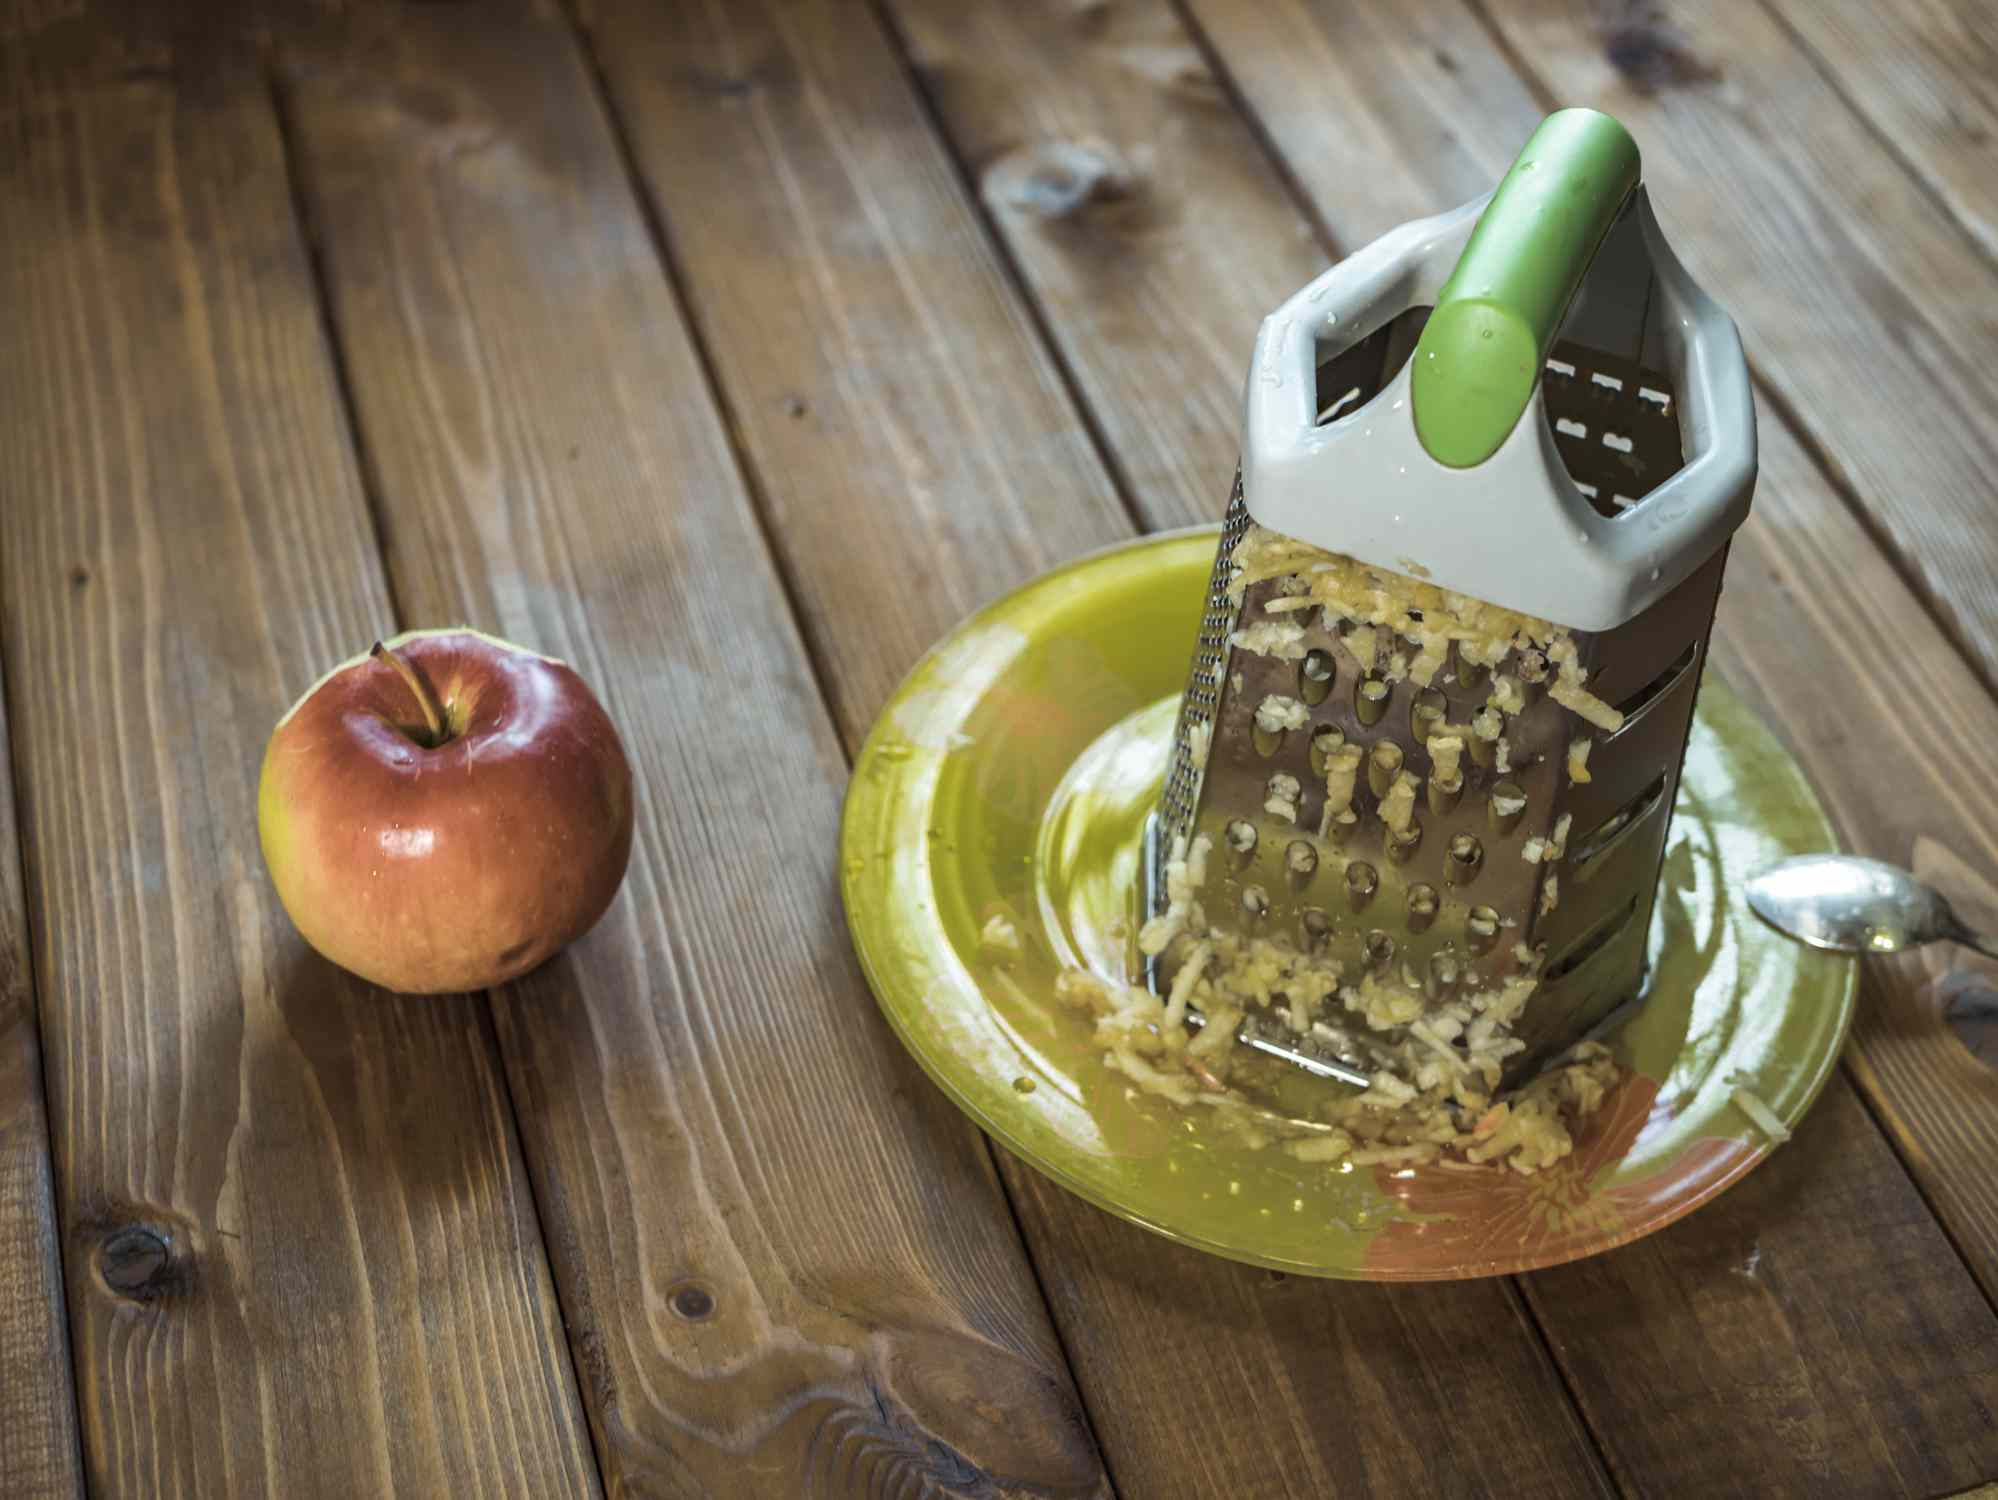 Cheese grater sitting on a plate with grated an apple